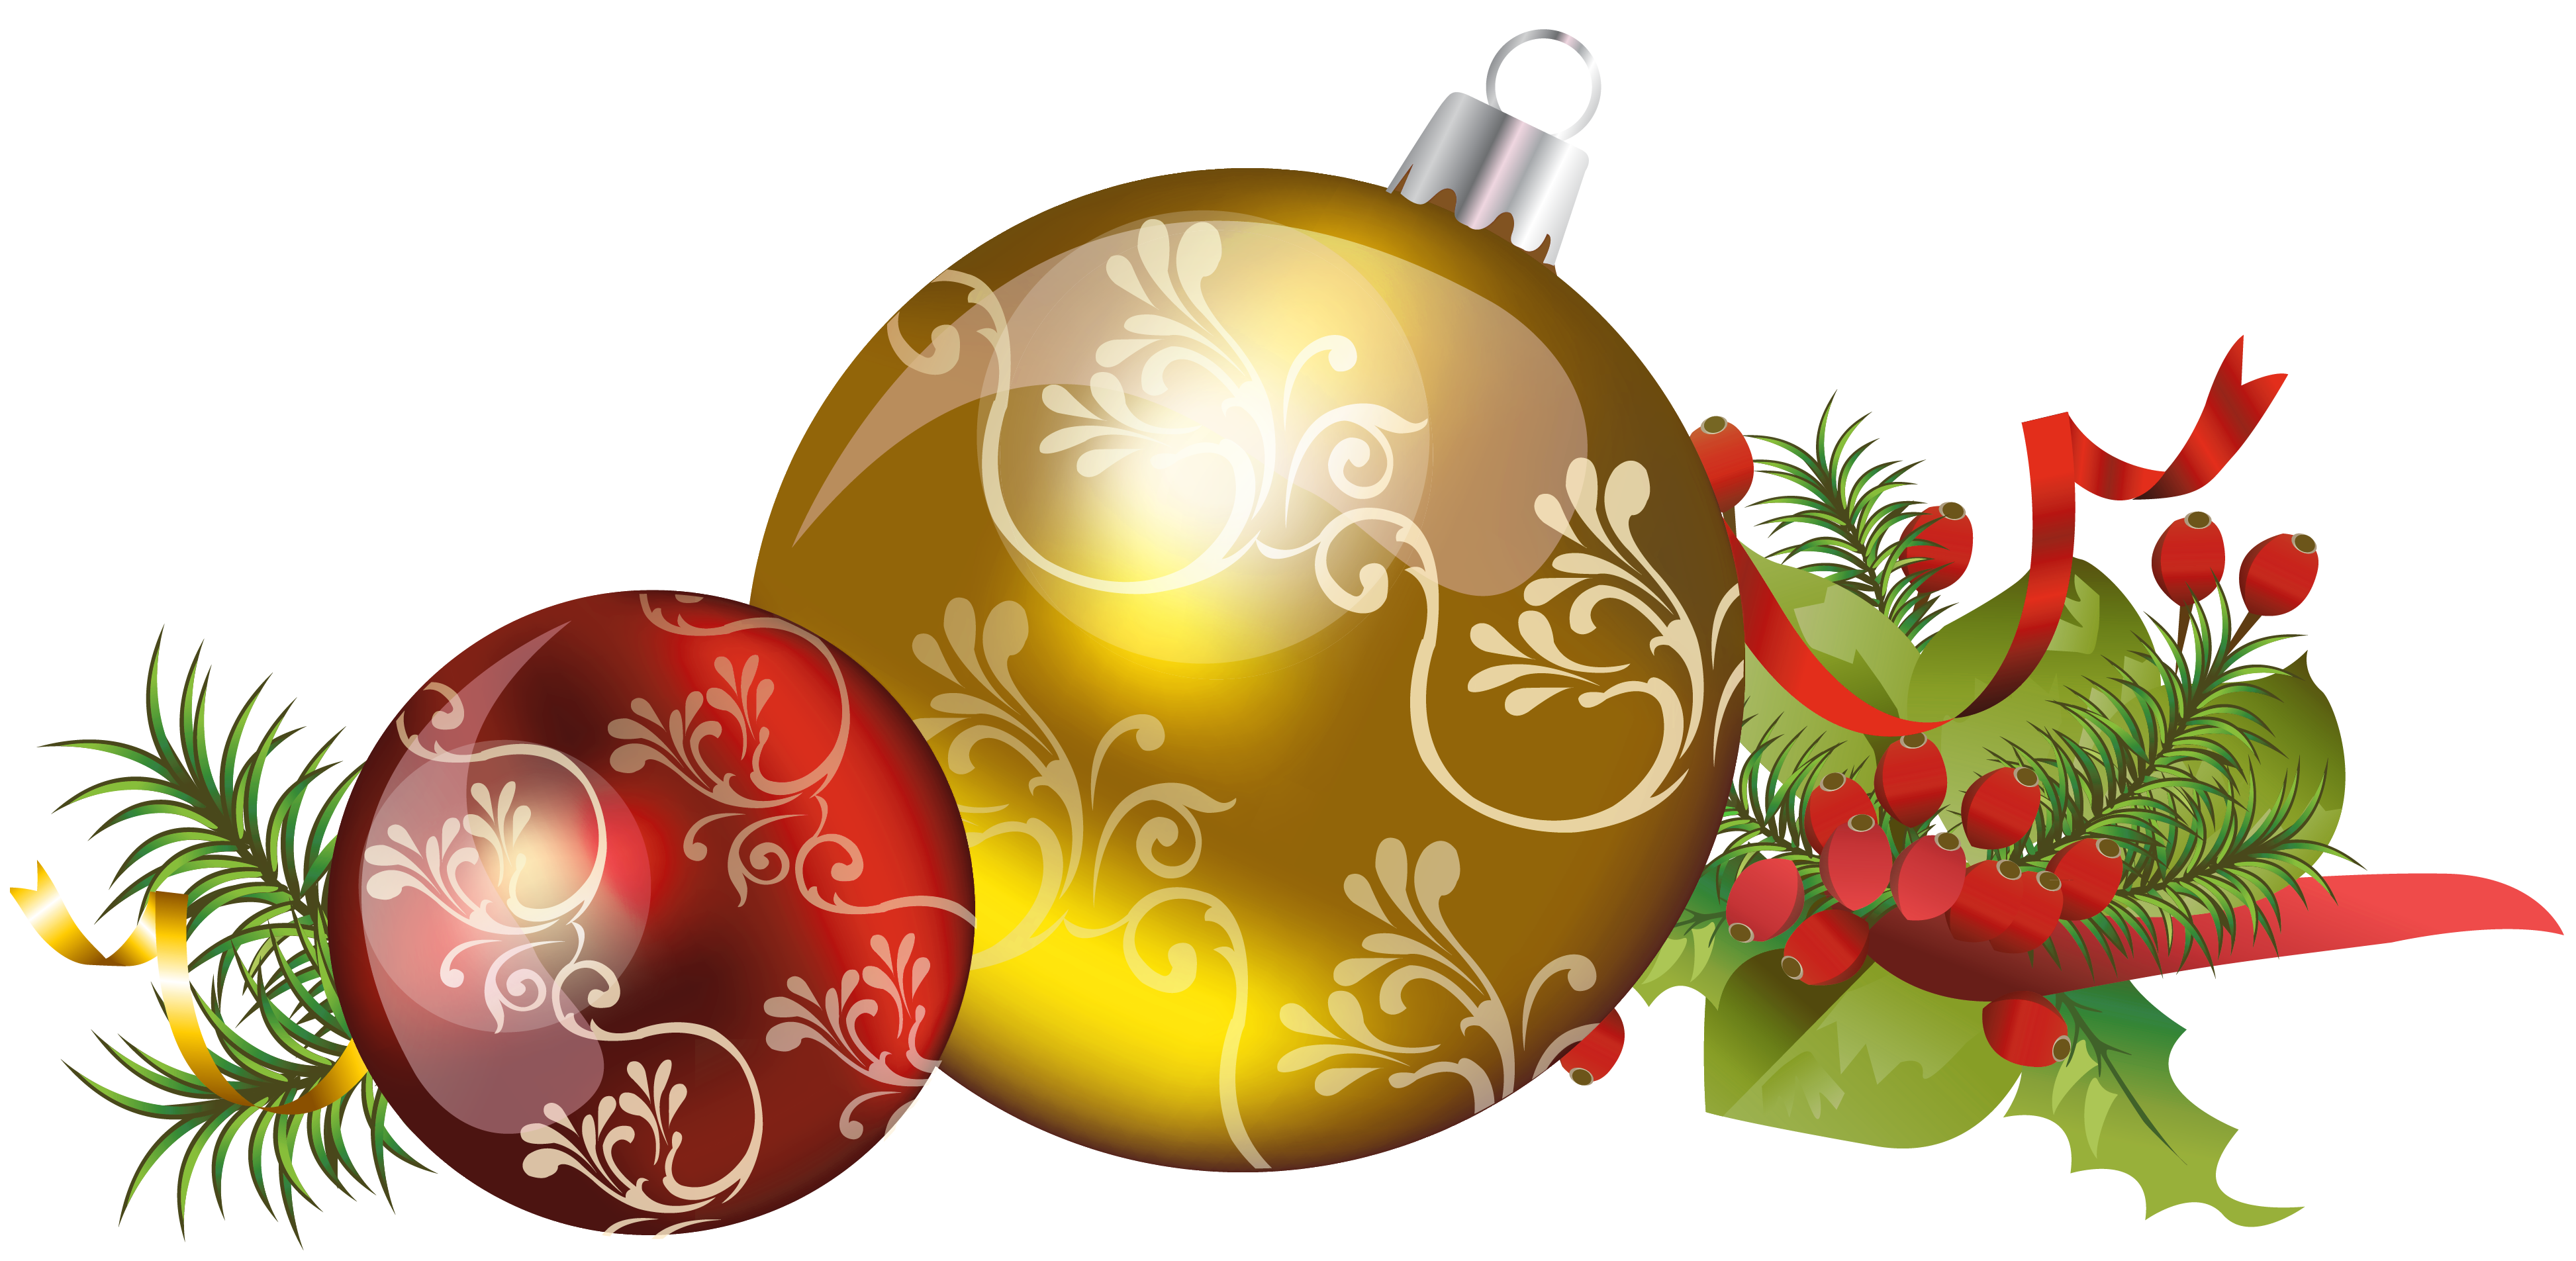 Yellow christmas ornaments png. Ball transparent images all